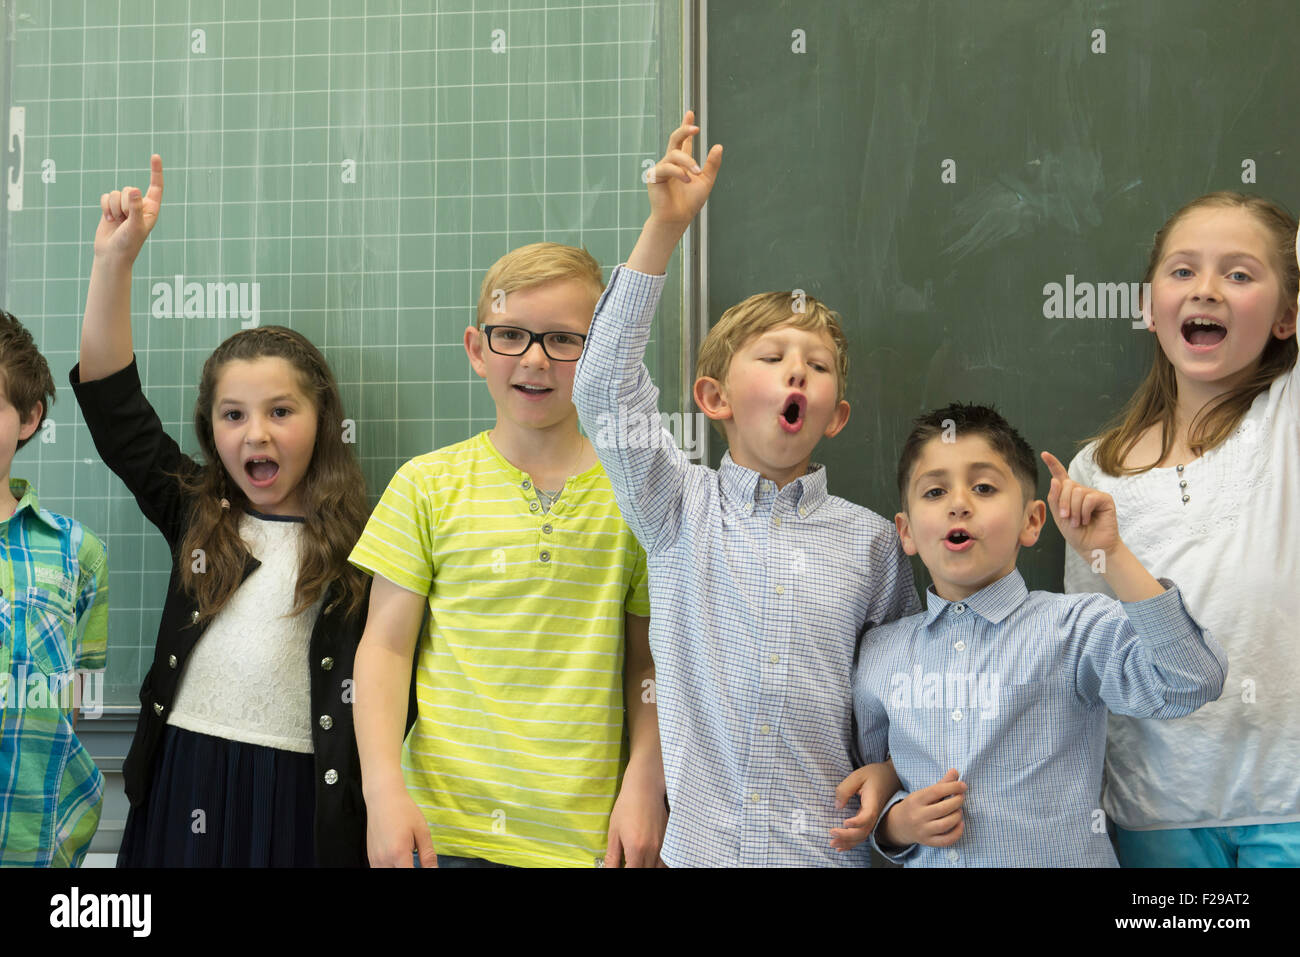 School students raising hands in front of blackboard in classroom, Munich, Bavaria, Germany, - Stock Image